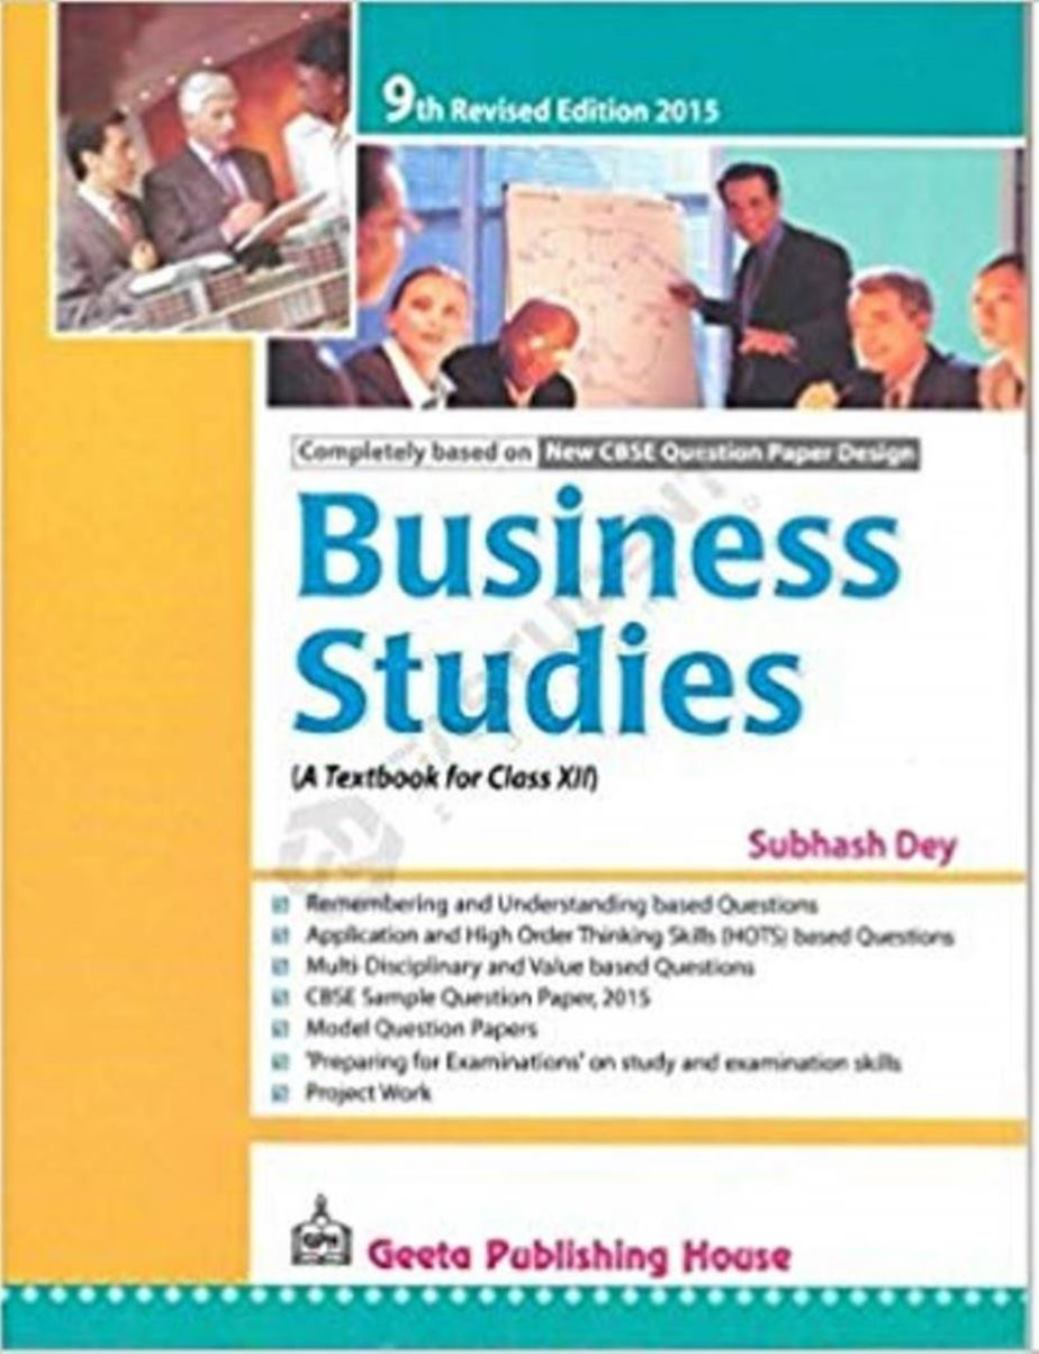 Business Studies: A Textbook for Class XII Paperback